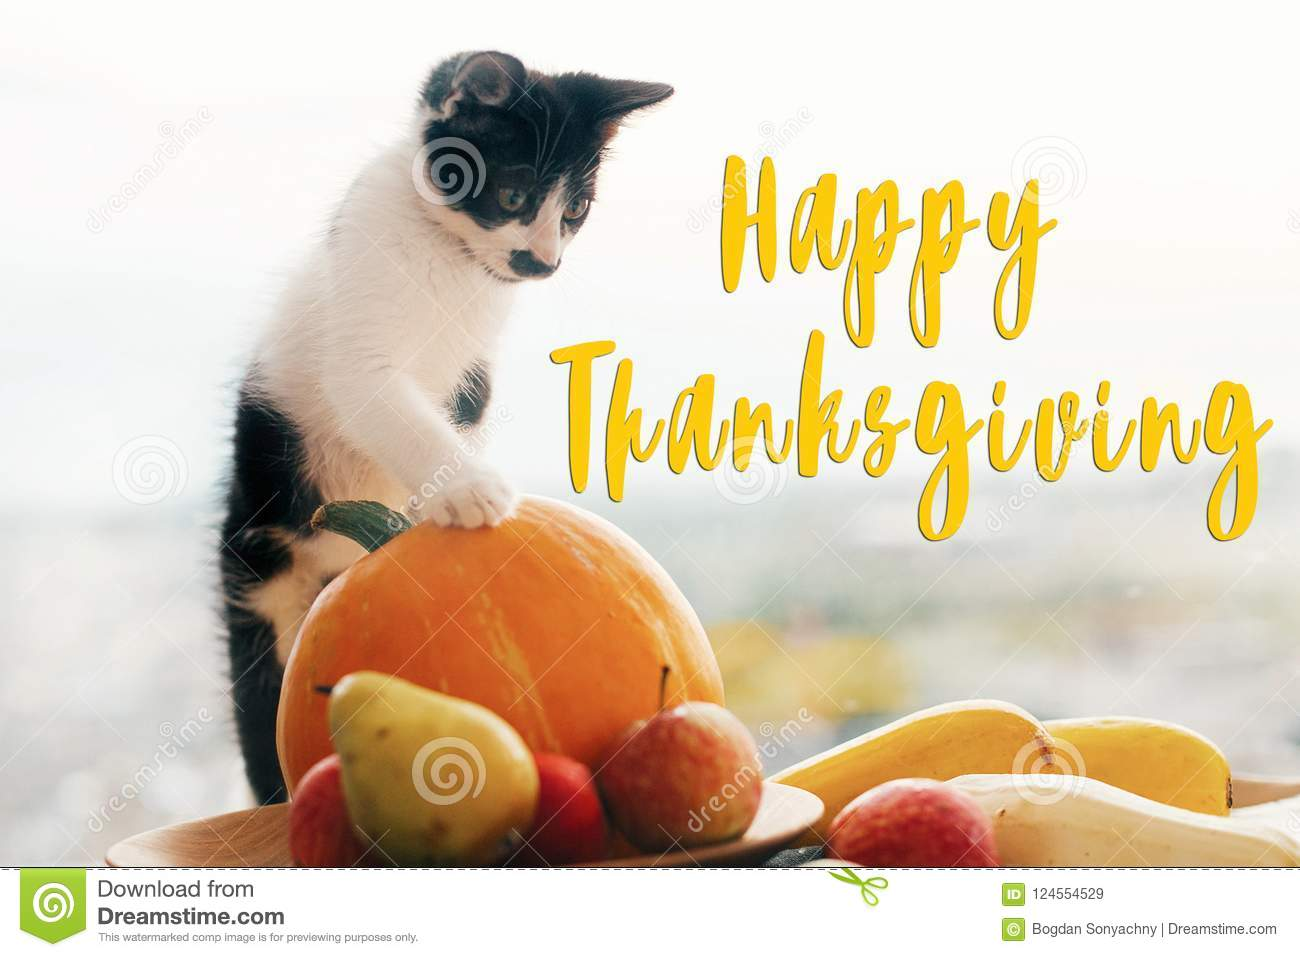 Happy Thanksgiving Text Seasons Greeting Card Sign Cute Kitty Pumpkin Wicker Basket On Wooden Background Cat And Autumn Vegetables